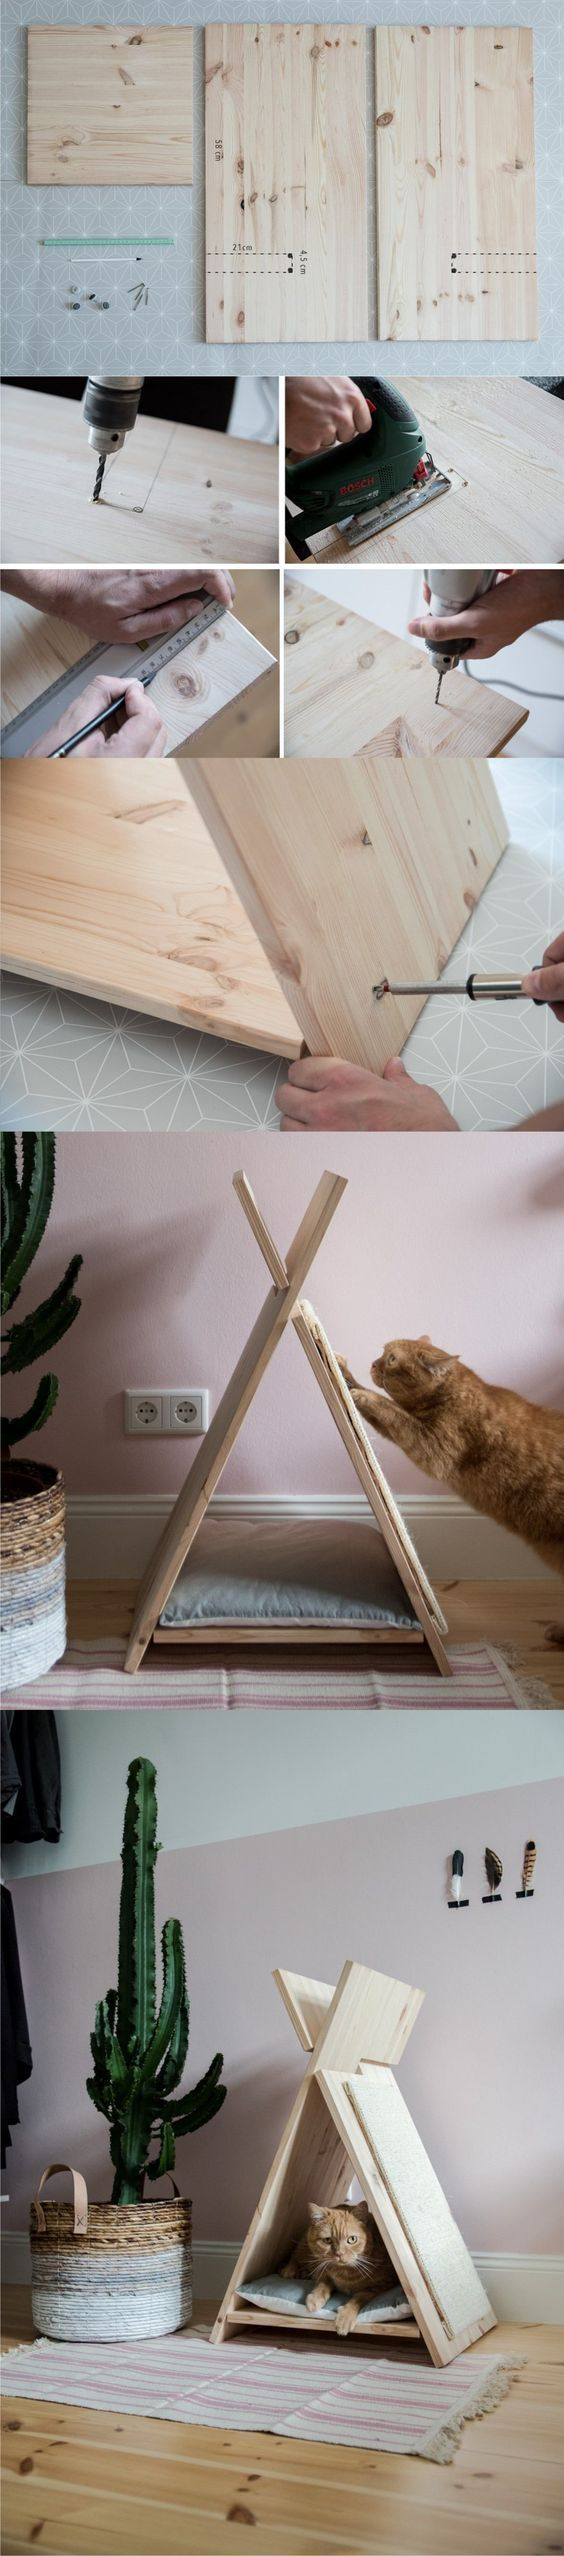 I don't understand Spanish in the slightest, but this DIY cat project looks AMAZING. I love how simple the instructions are! Anyone tried this? // pet products // diy cat stuff